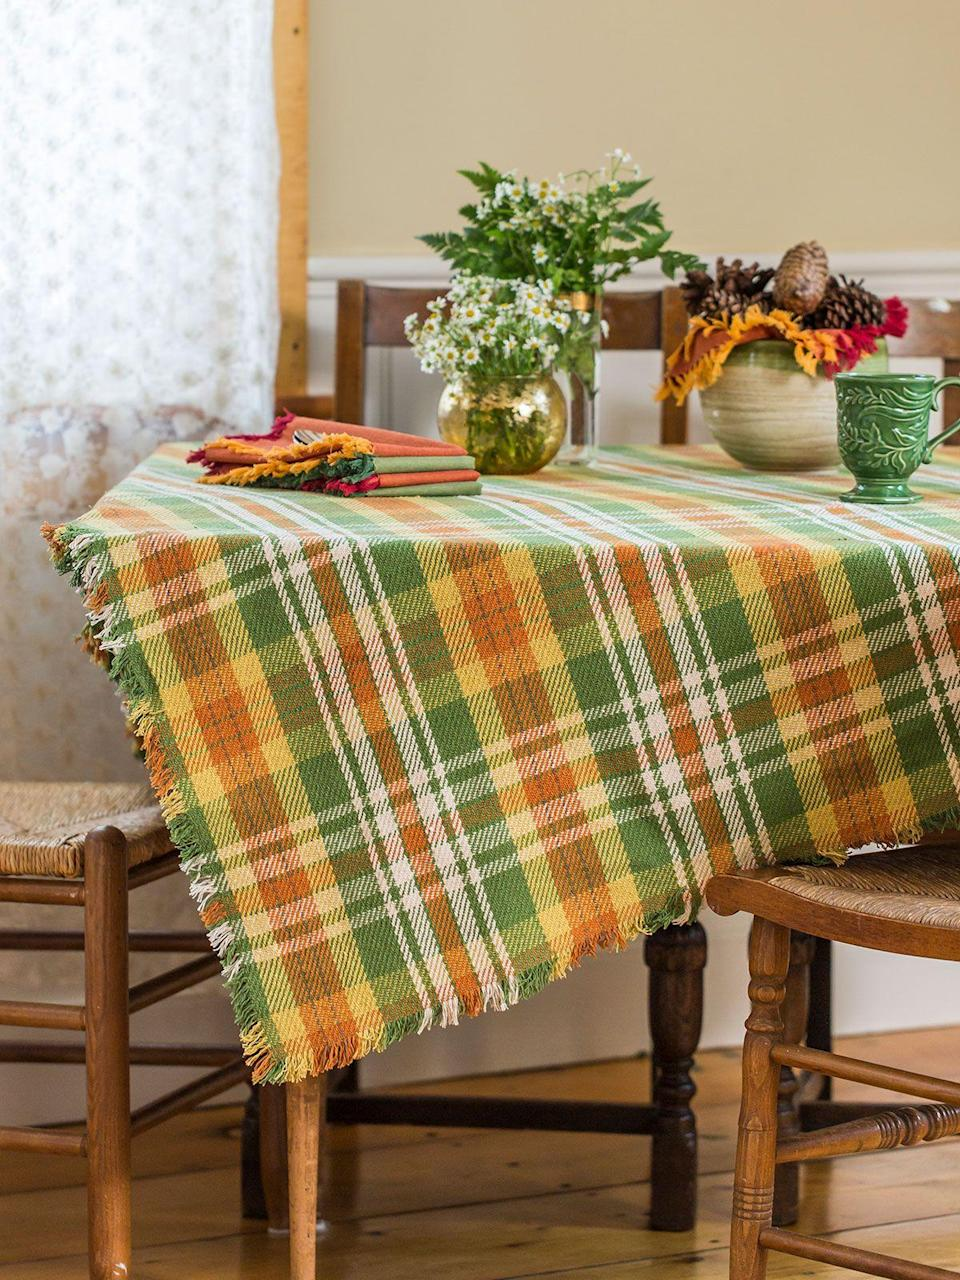 "<p>aprilcornell.com</p><p><strong>$27.20</strong></p><p><a href=""https://www.aprilcornell.com/product/September-Plaid-Tablecloth-TPSPTG-Autumn/linens-kitchen-attic-clearance"" rel=""nofollow noopener"" target=""_blank"" data-ylk=""slk:Shop Now"" class=""link rapid-noclick-resp"">Shop Now</a></p><p>Guests will love cozying up to your warm and welcoming Thanksgiving table outfitted with a seasonal plaid tablecloth.</p>"